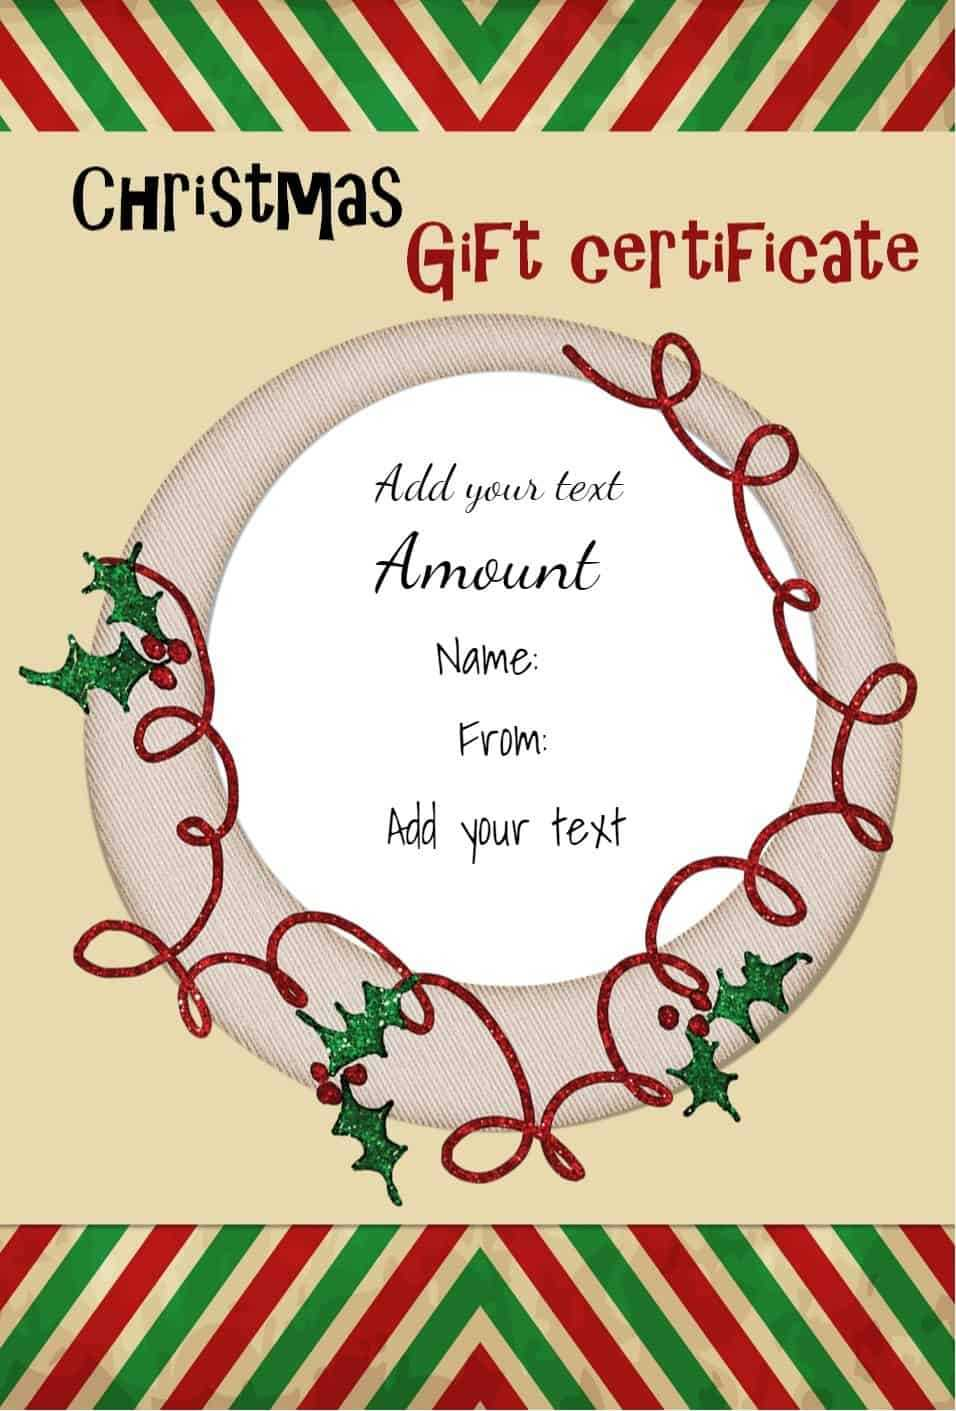 Free Christmas Gift Certificate Template | Customize Online Throughout Free Christmas Gift Certificate Templates